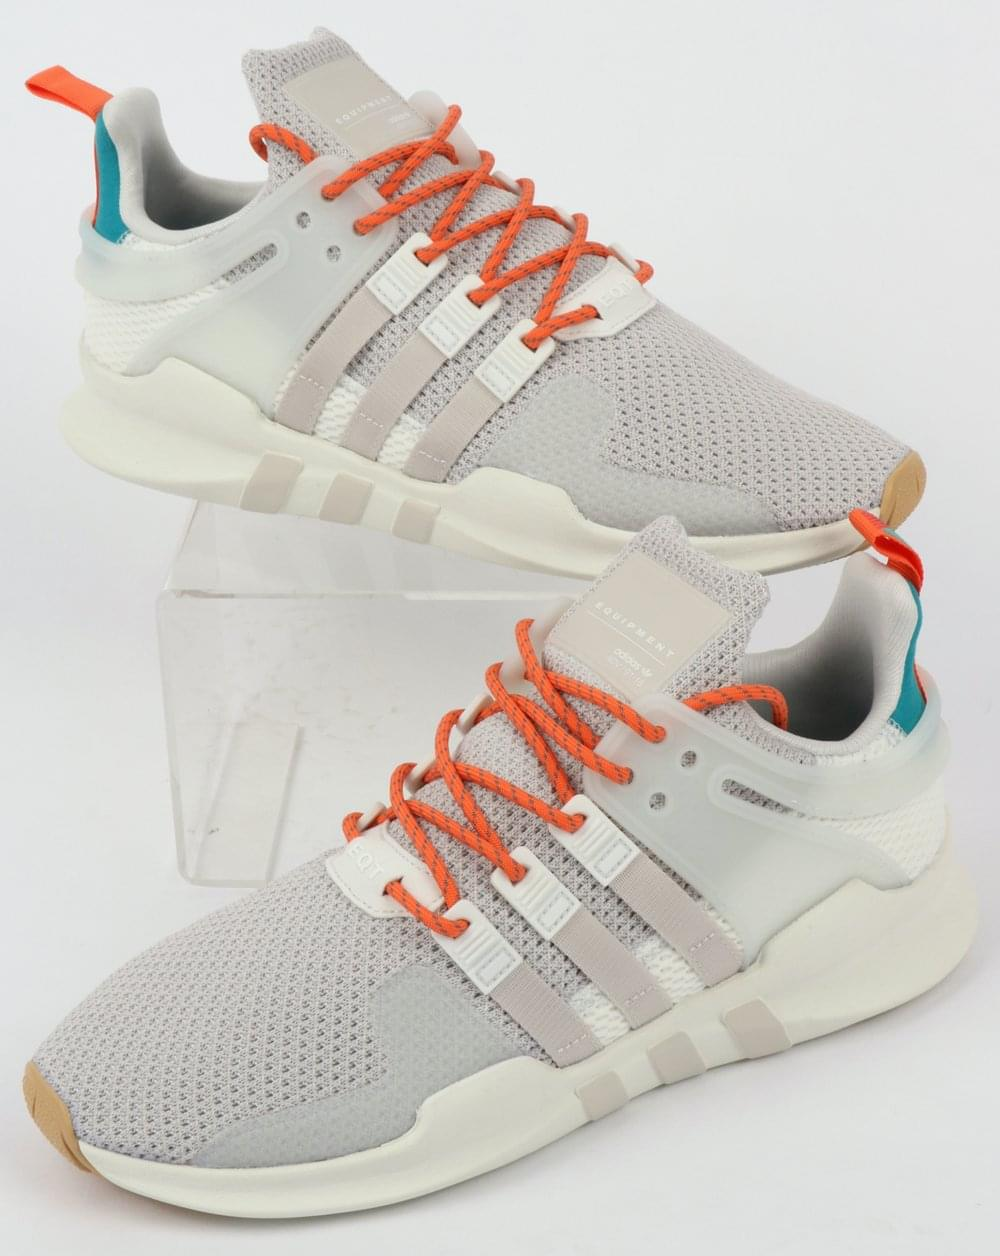 new style d3114 069ed Adidas EQT Support Adv Summer Trainers White/Chalk